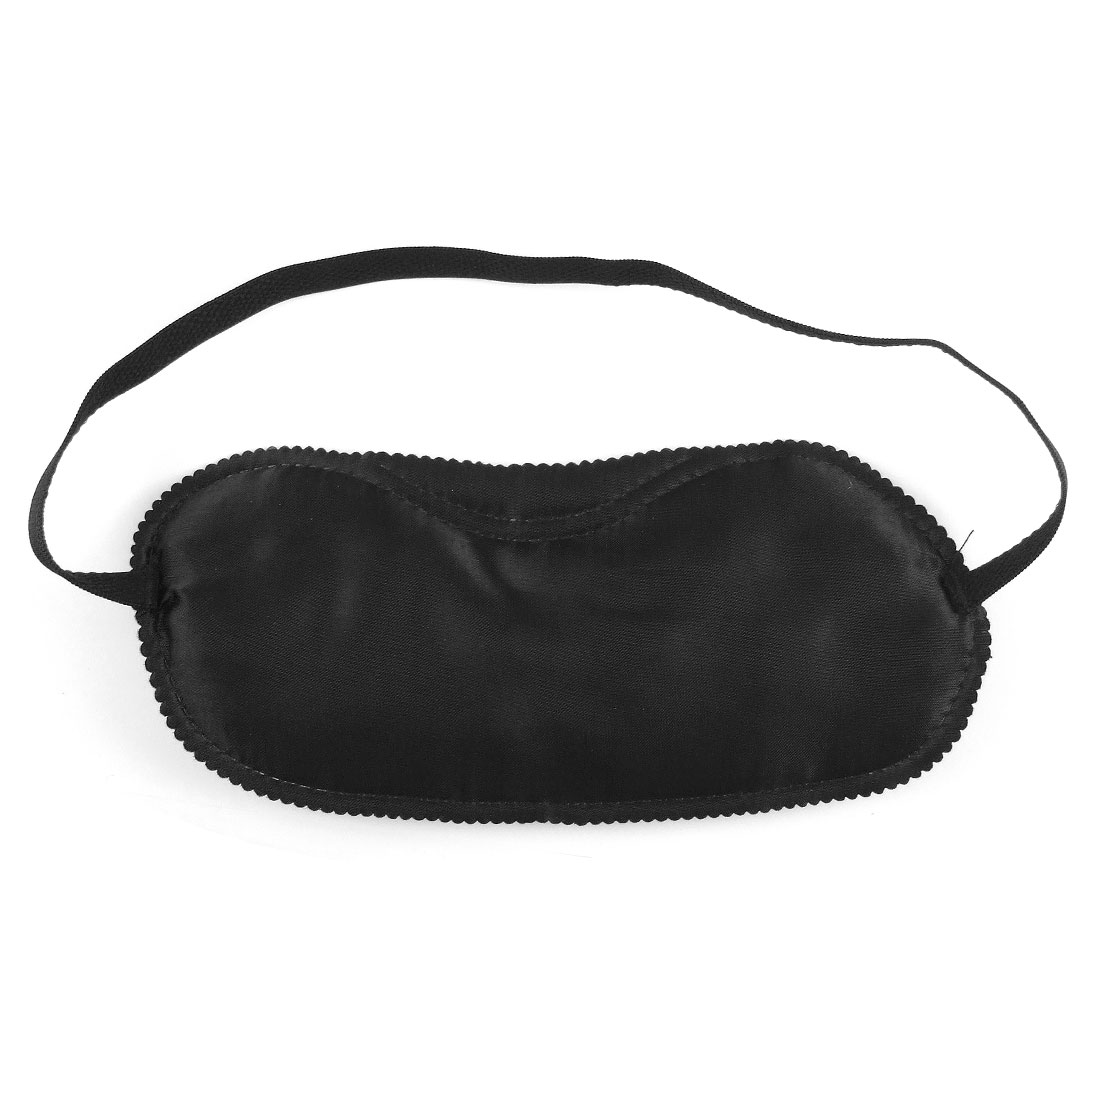 Black Stitched Lettuce Trim Sponge Filled Portable Eye Cover Mask w Elastic Band